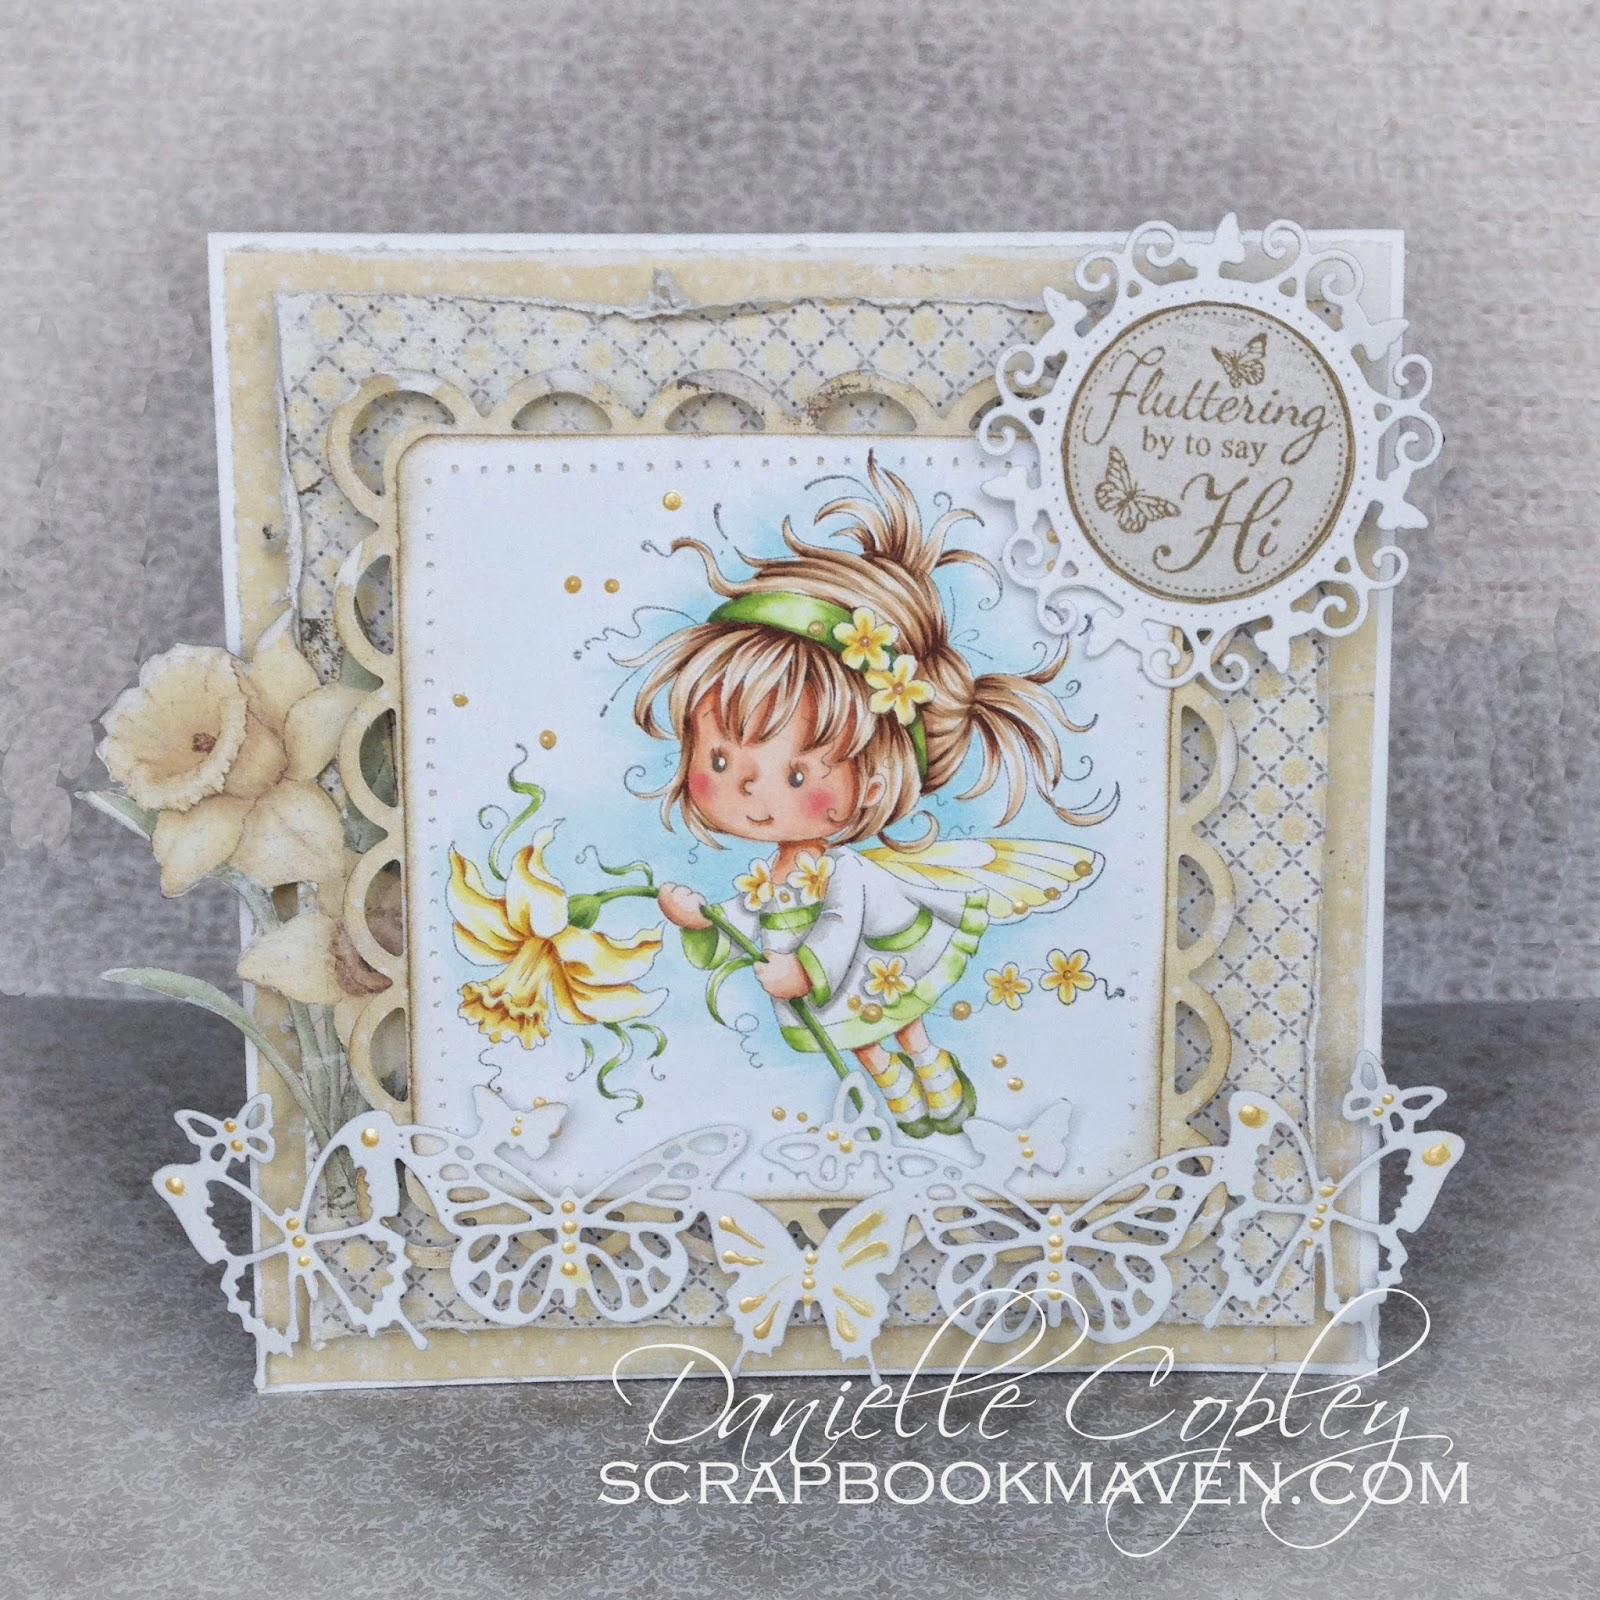 Yellow Spring Daffodil Card using Maja Vintage Spring Basics, Whimsy Wee Stamps Daphne image and Copics for Scrapbook Maven